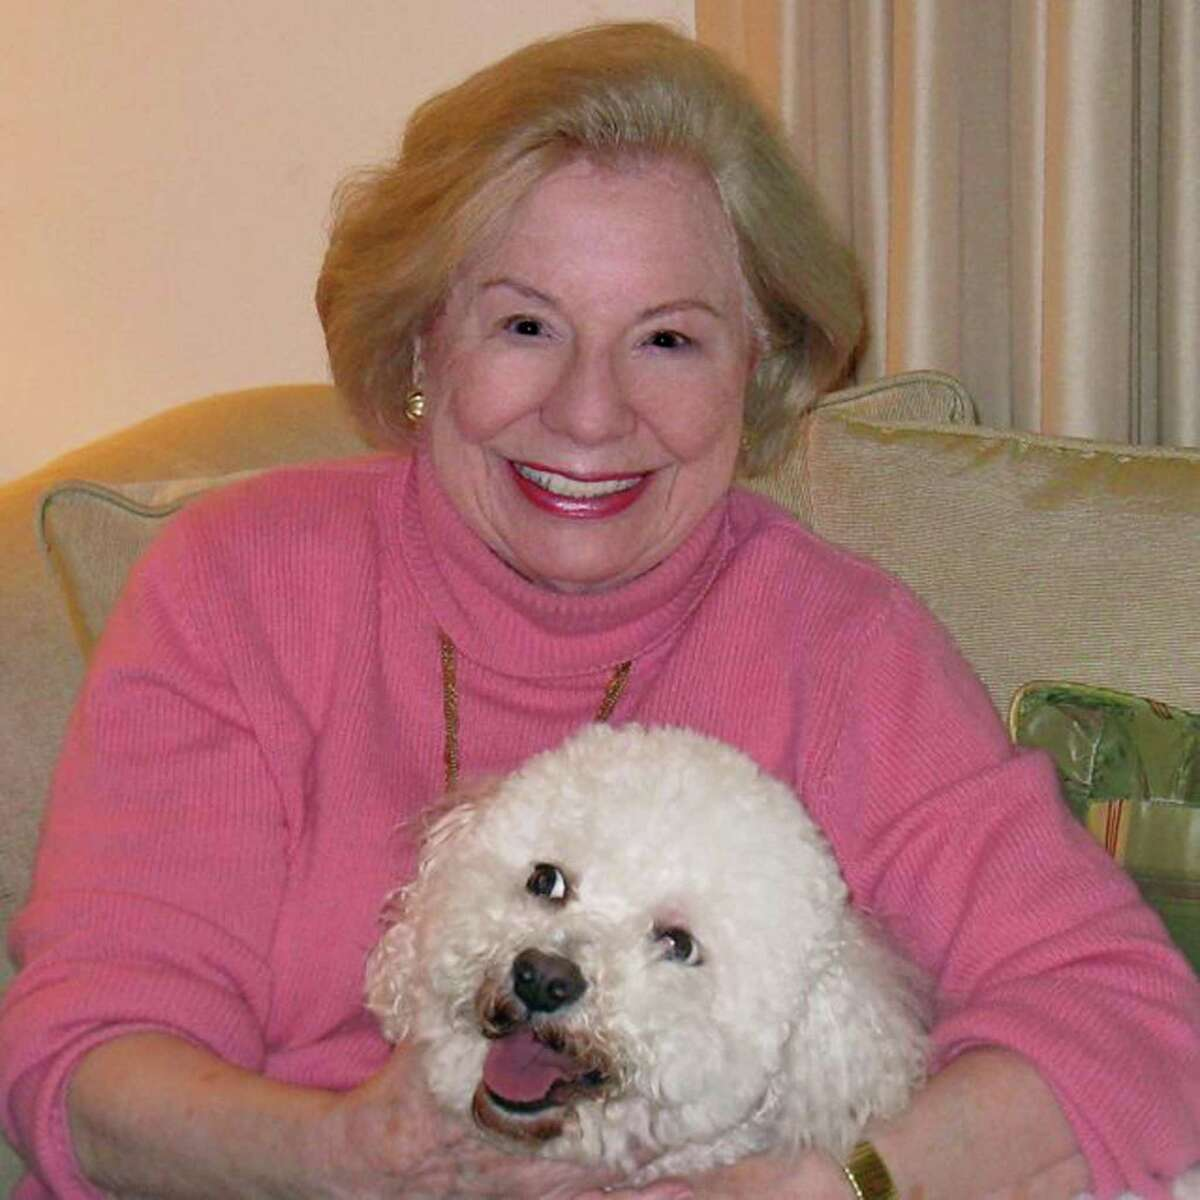 Greenwich author and newspaper columnist Carla Wallach